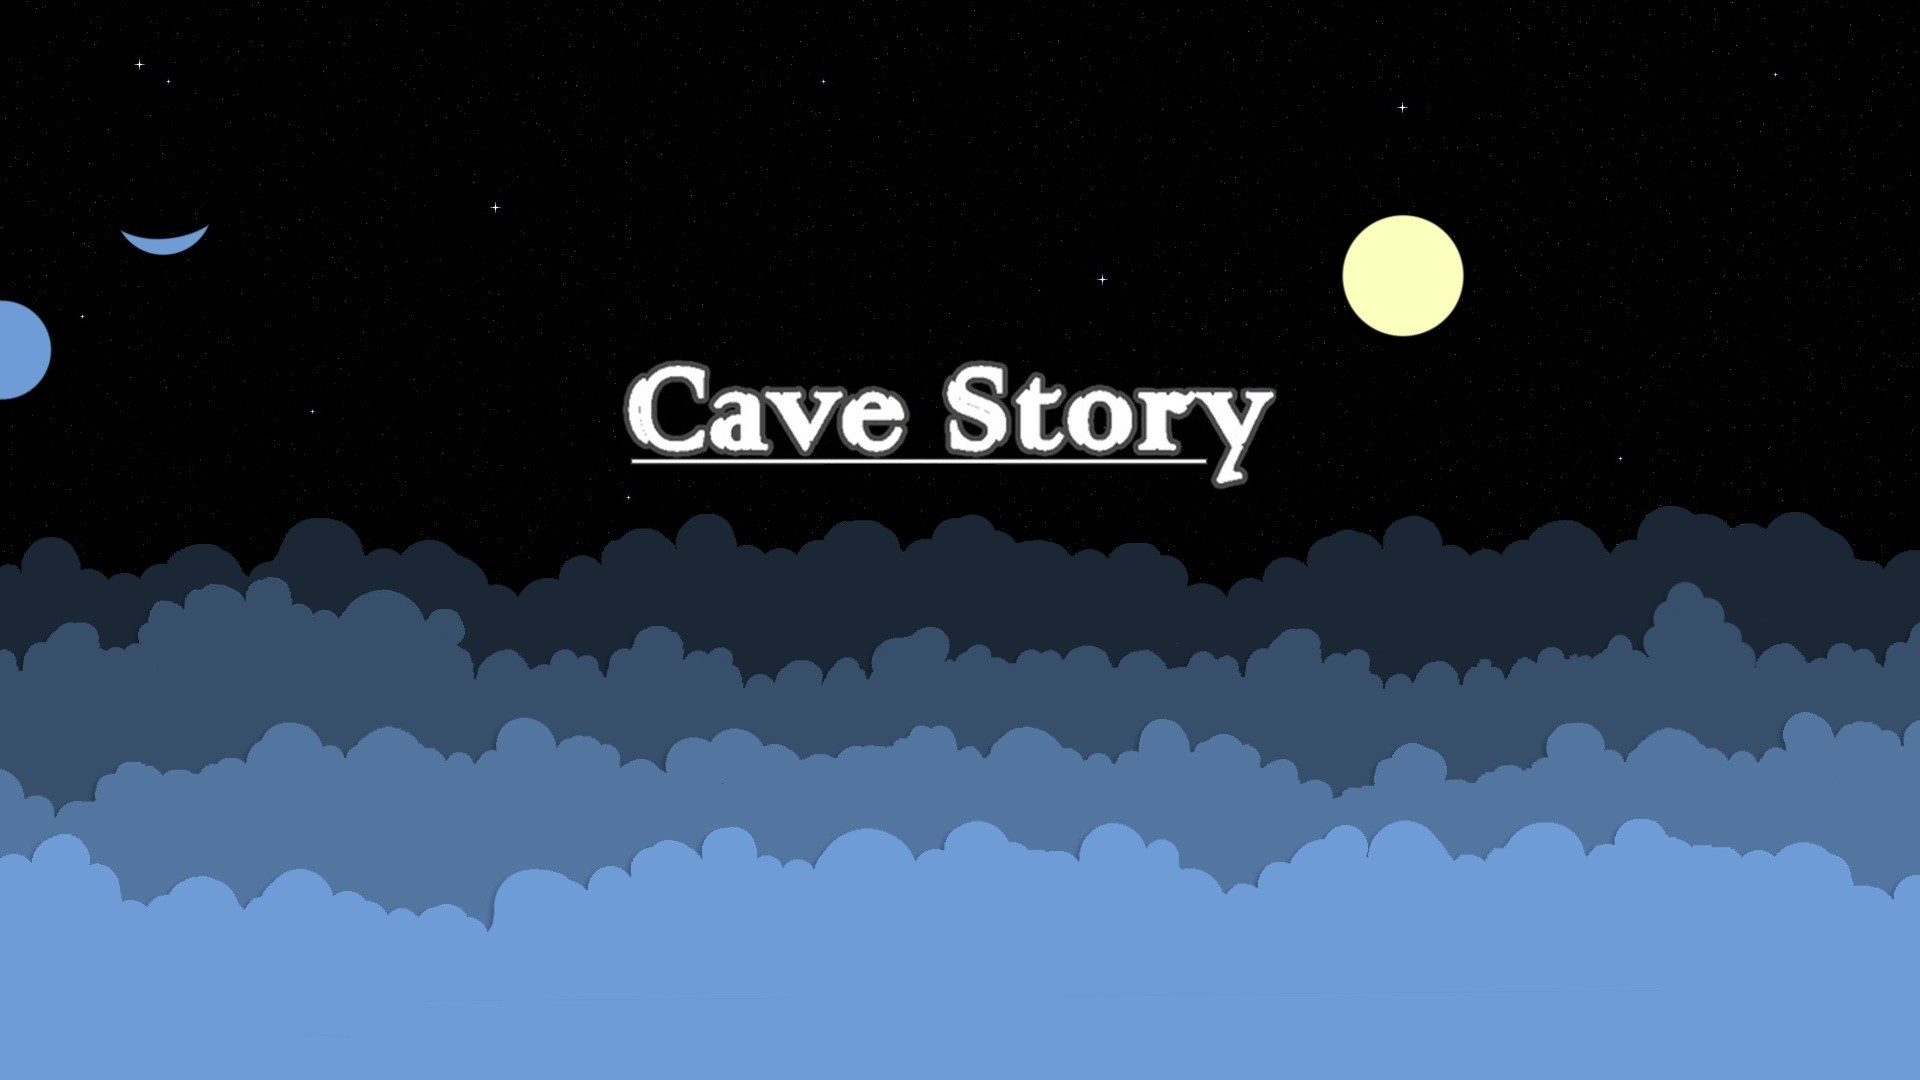 1920x1080 Cave Story wallpaper